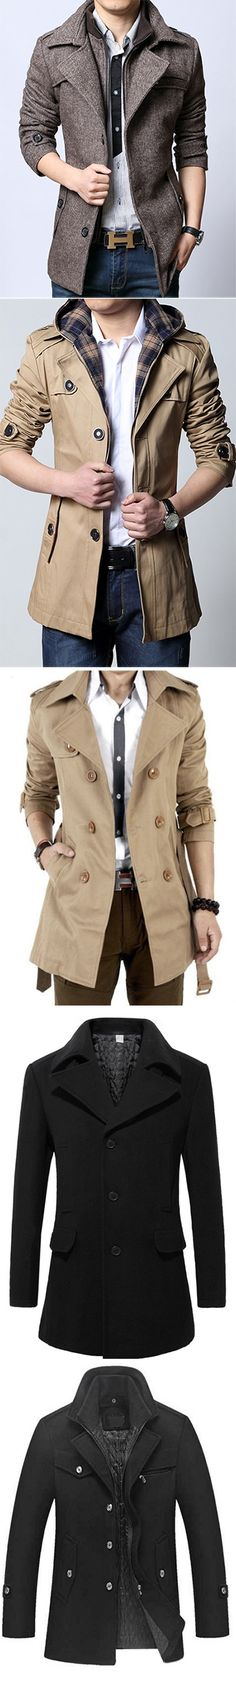 Men's Coats and Jackets. Fashion picked for you                                                                                                                                                                                 More